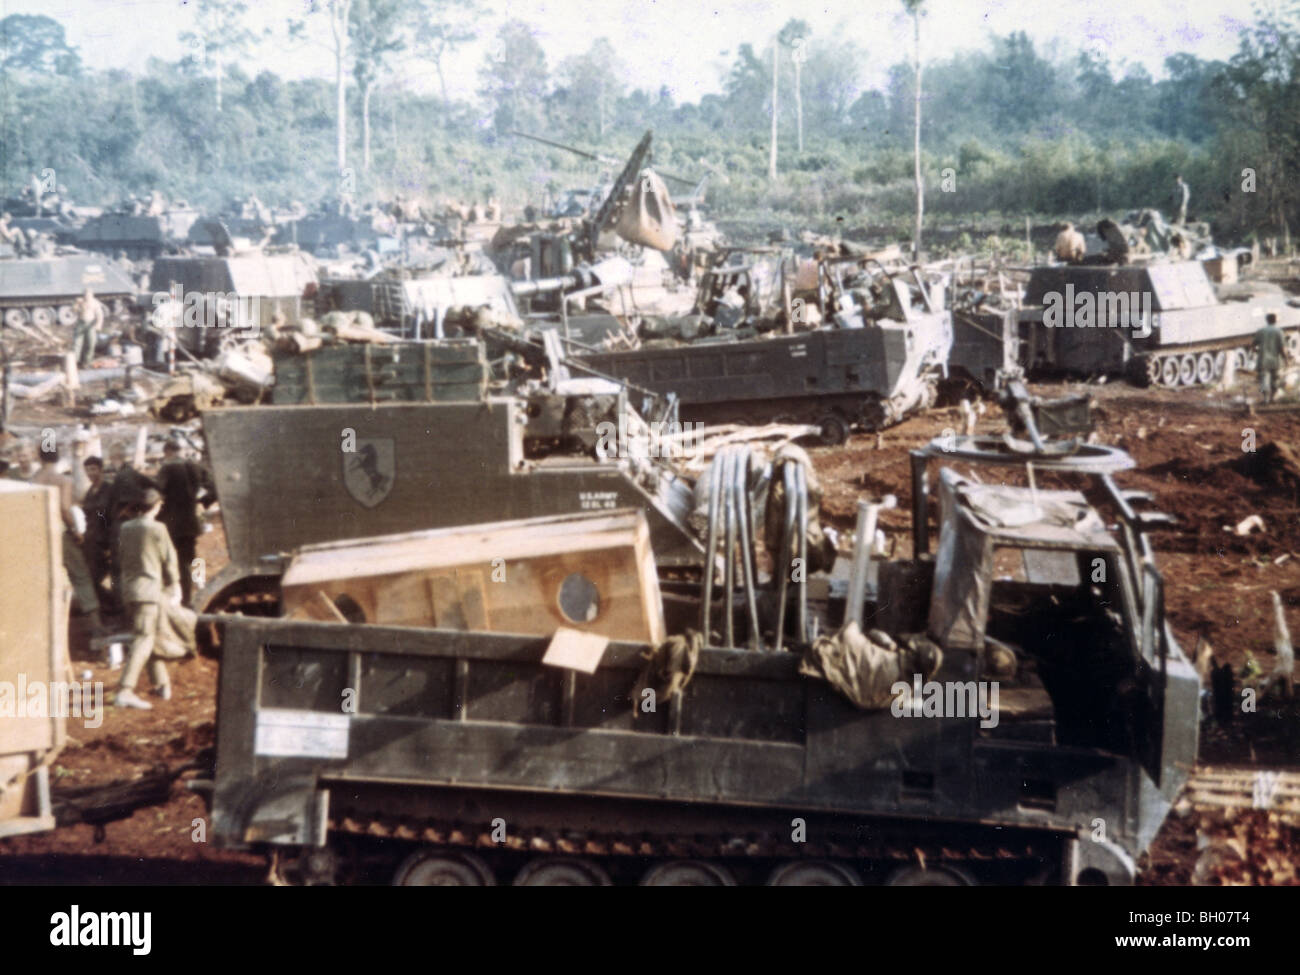 """Men and vehicles from Troop """"E"""", 11th Armored Cavalry, set up a night defensive position during the 1970 invasion Stock Photo"""